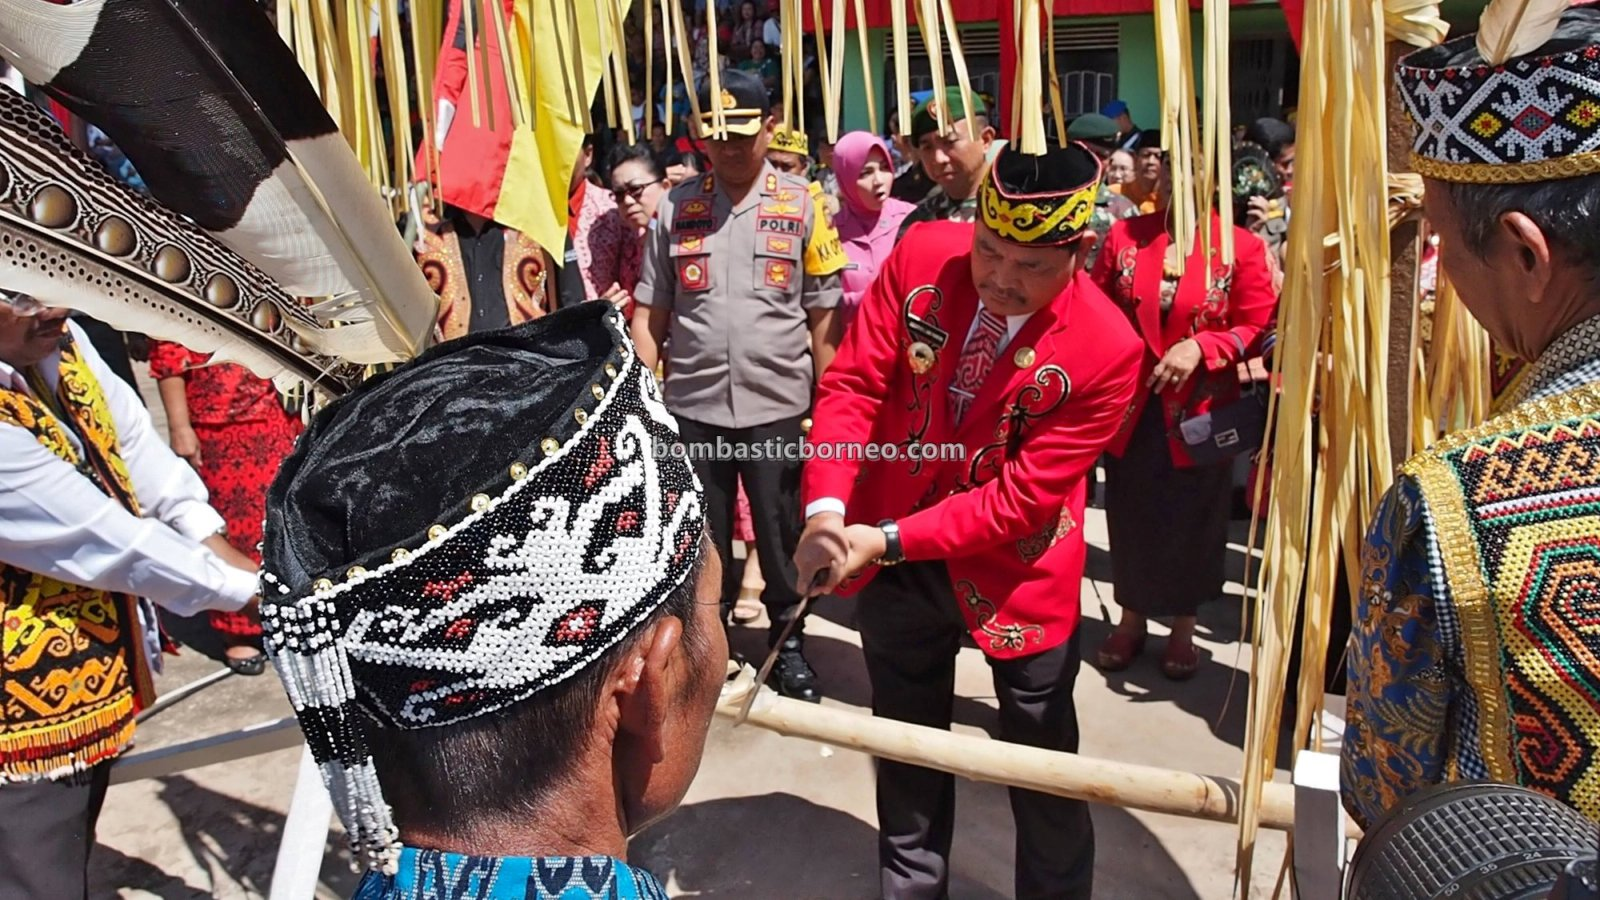 Paddy harvest festival, authentic, budaya, event, Indonesia, West Kalimantan, Ethnic, native, tribal, Tourism, tourist attraction, Trans Border, 印尼卡普阿斯胡卢, 西加里曼丹富都旅游, 婆罗洲土著丰收节日,